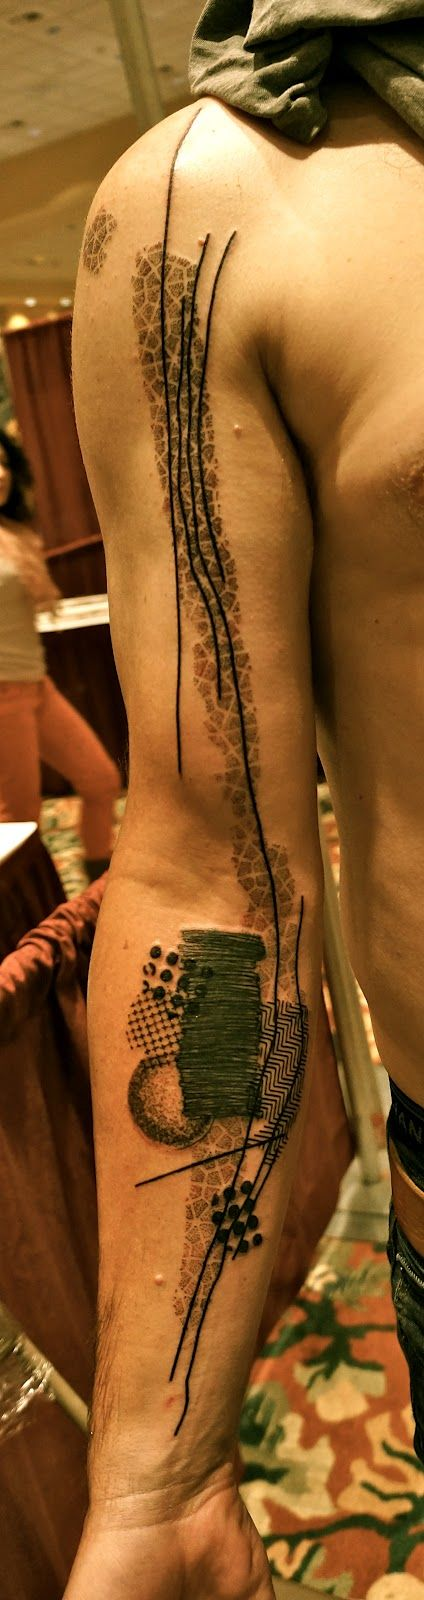 Boucherie Traditionnelle Noon Tattoos. Very interesting | modern abstract art tattoo